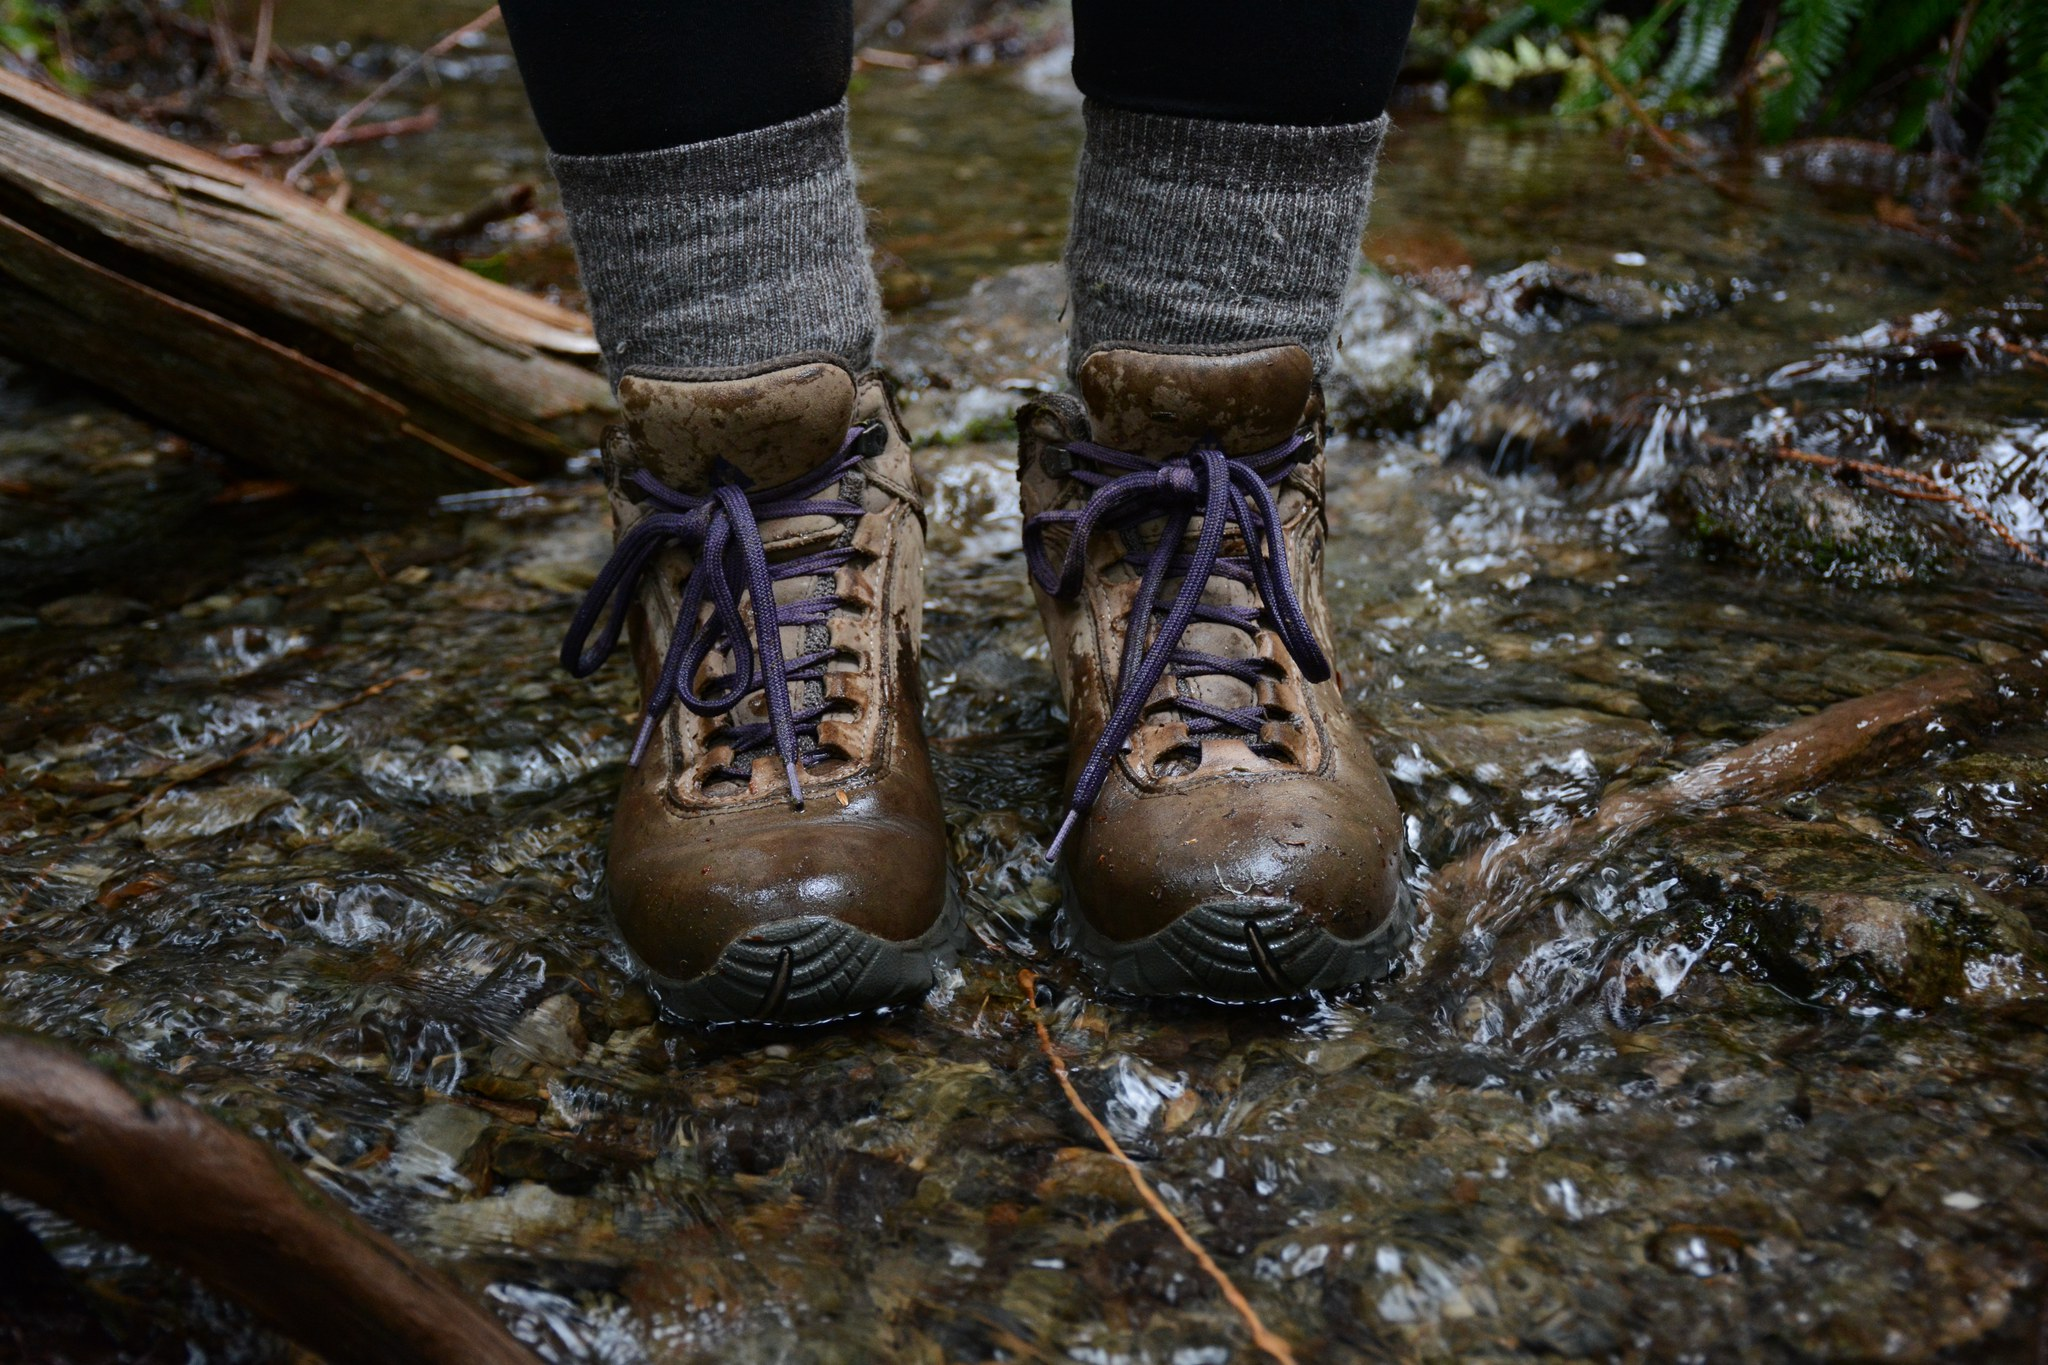 Testing the waters in a pair of leather waterproofed boots. Photo by Erik Haugen-Goodman.